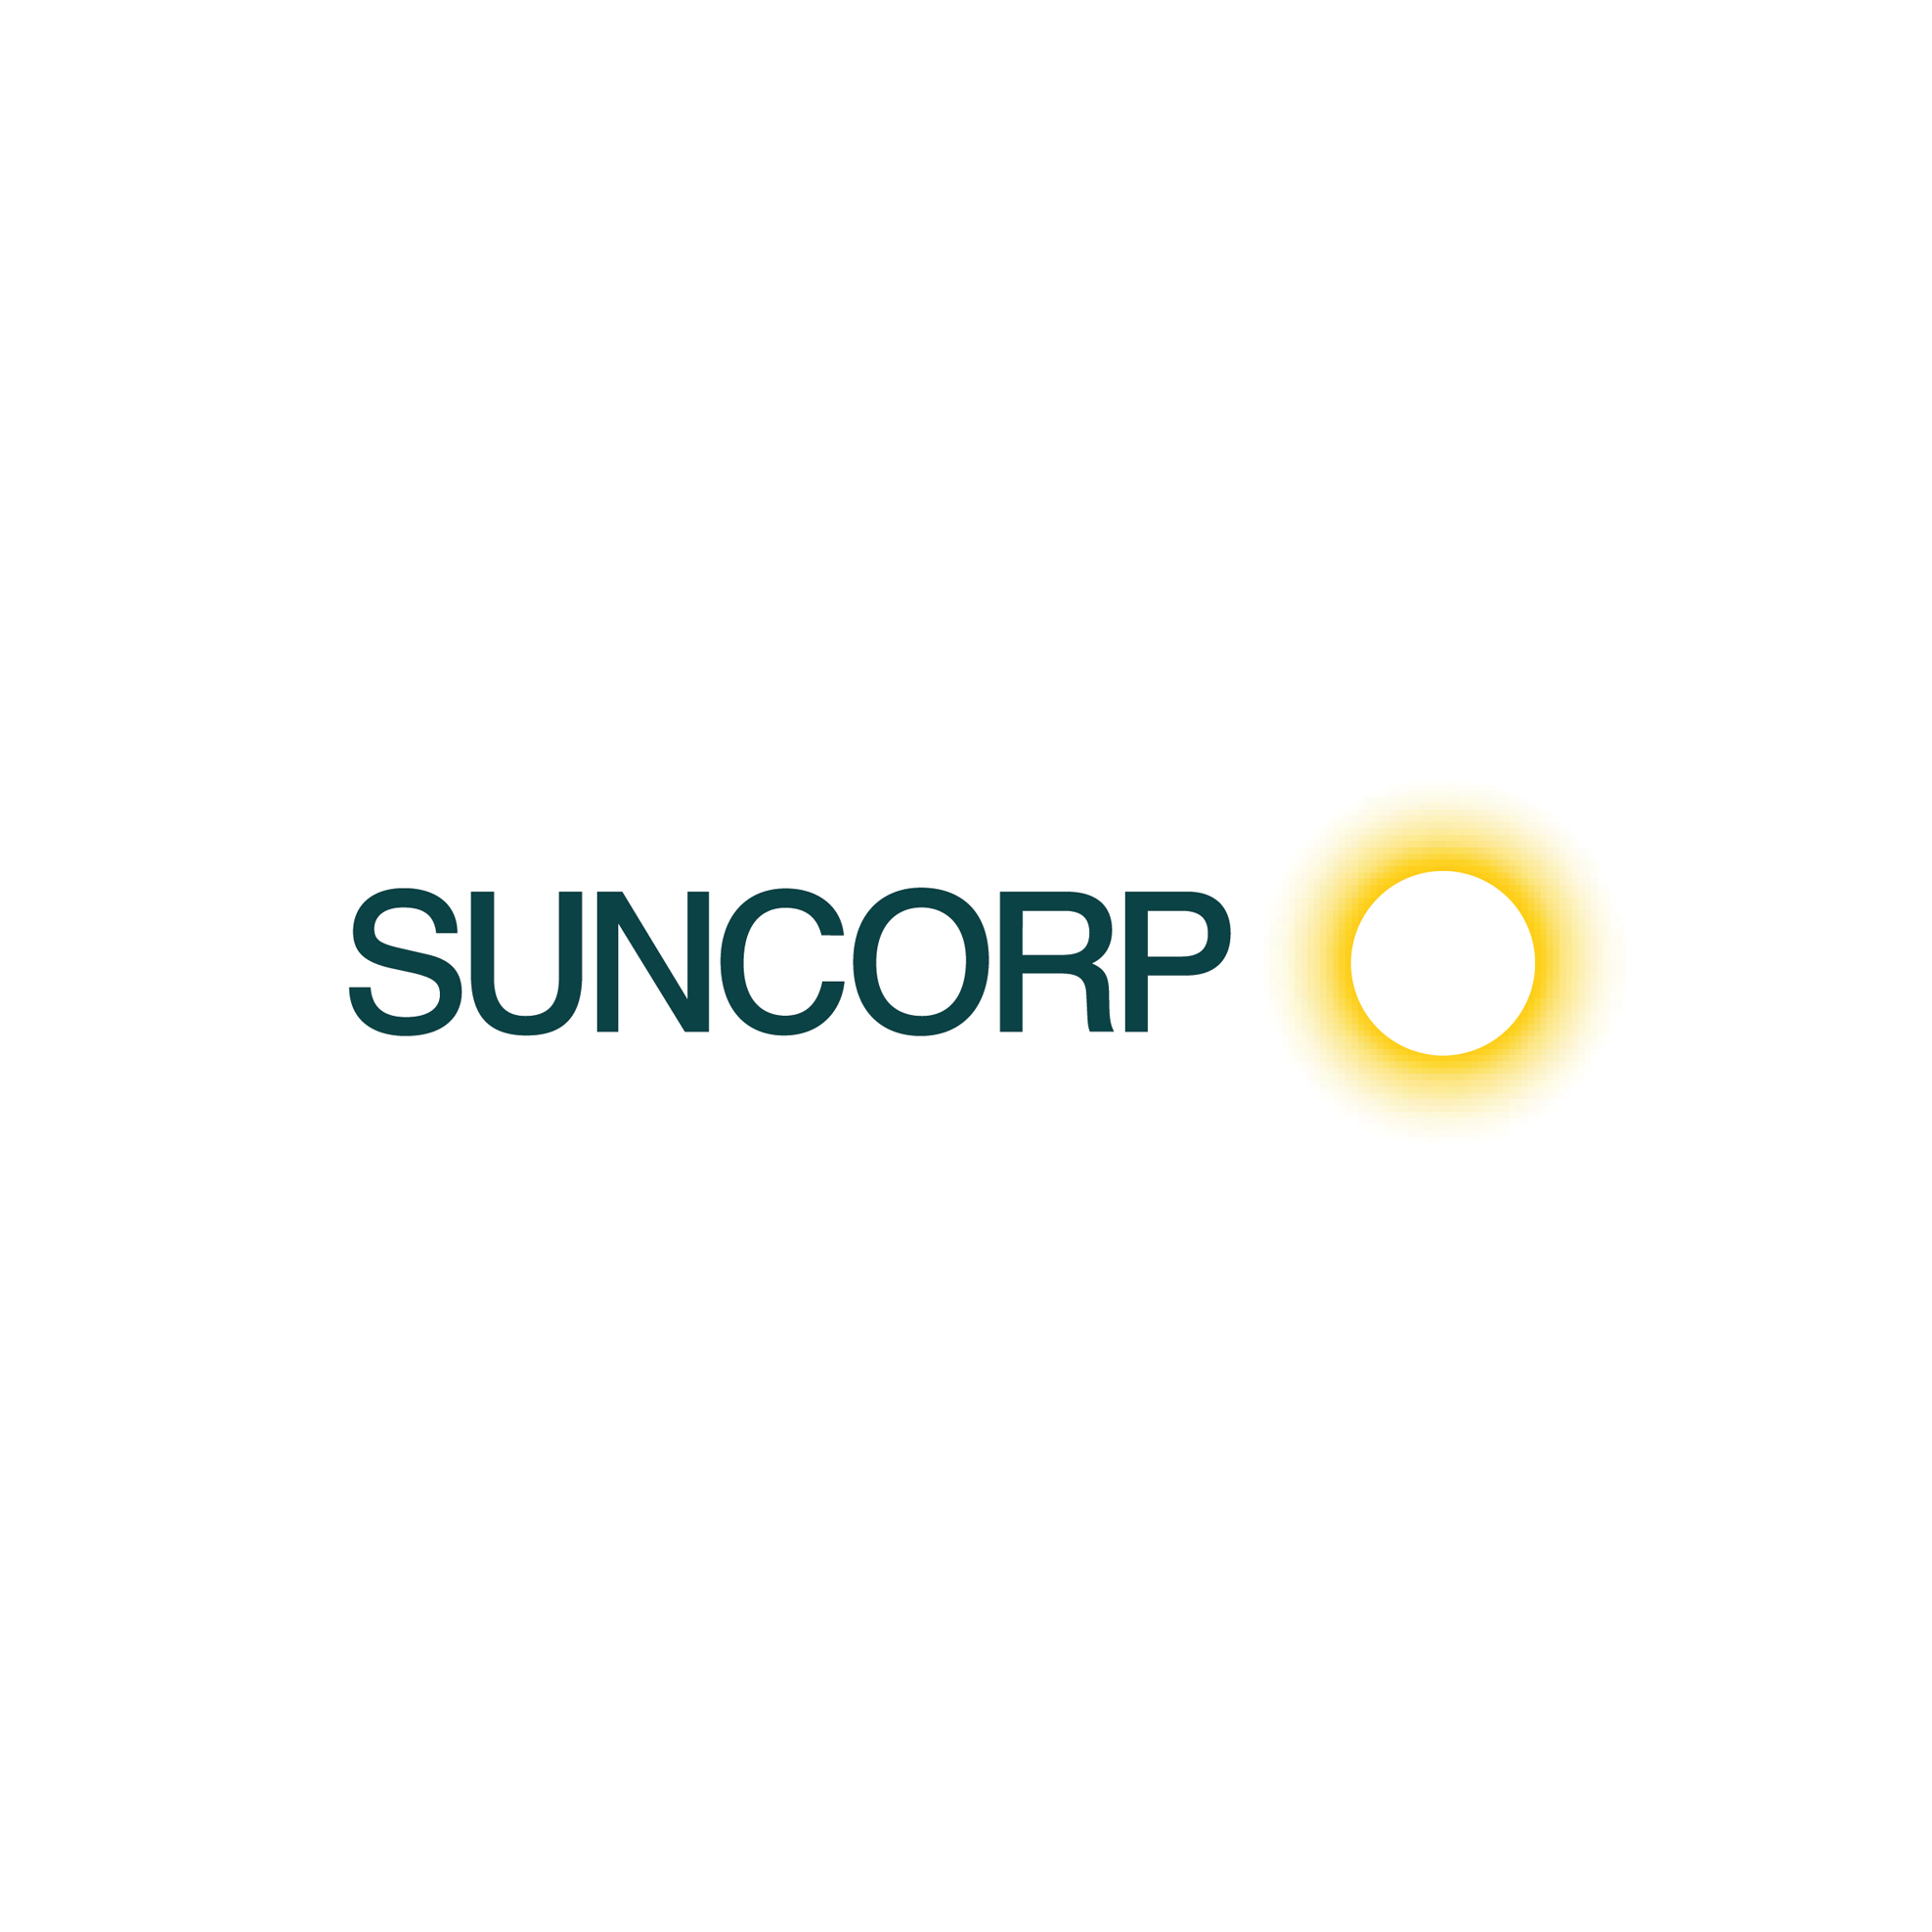 Suncorp logo x.png